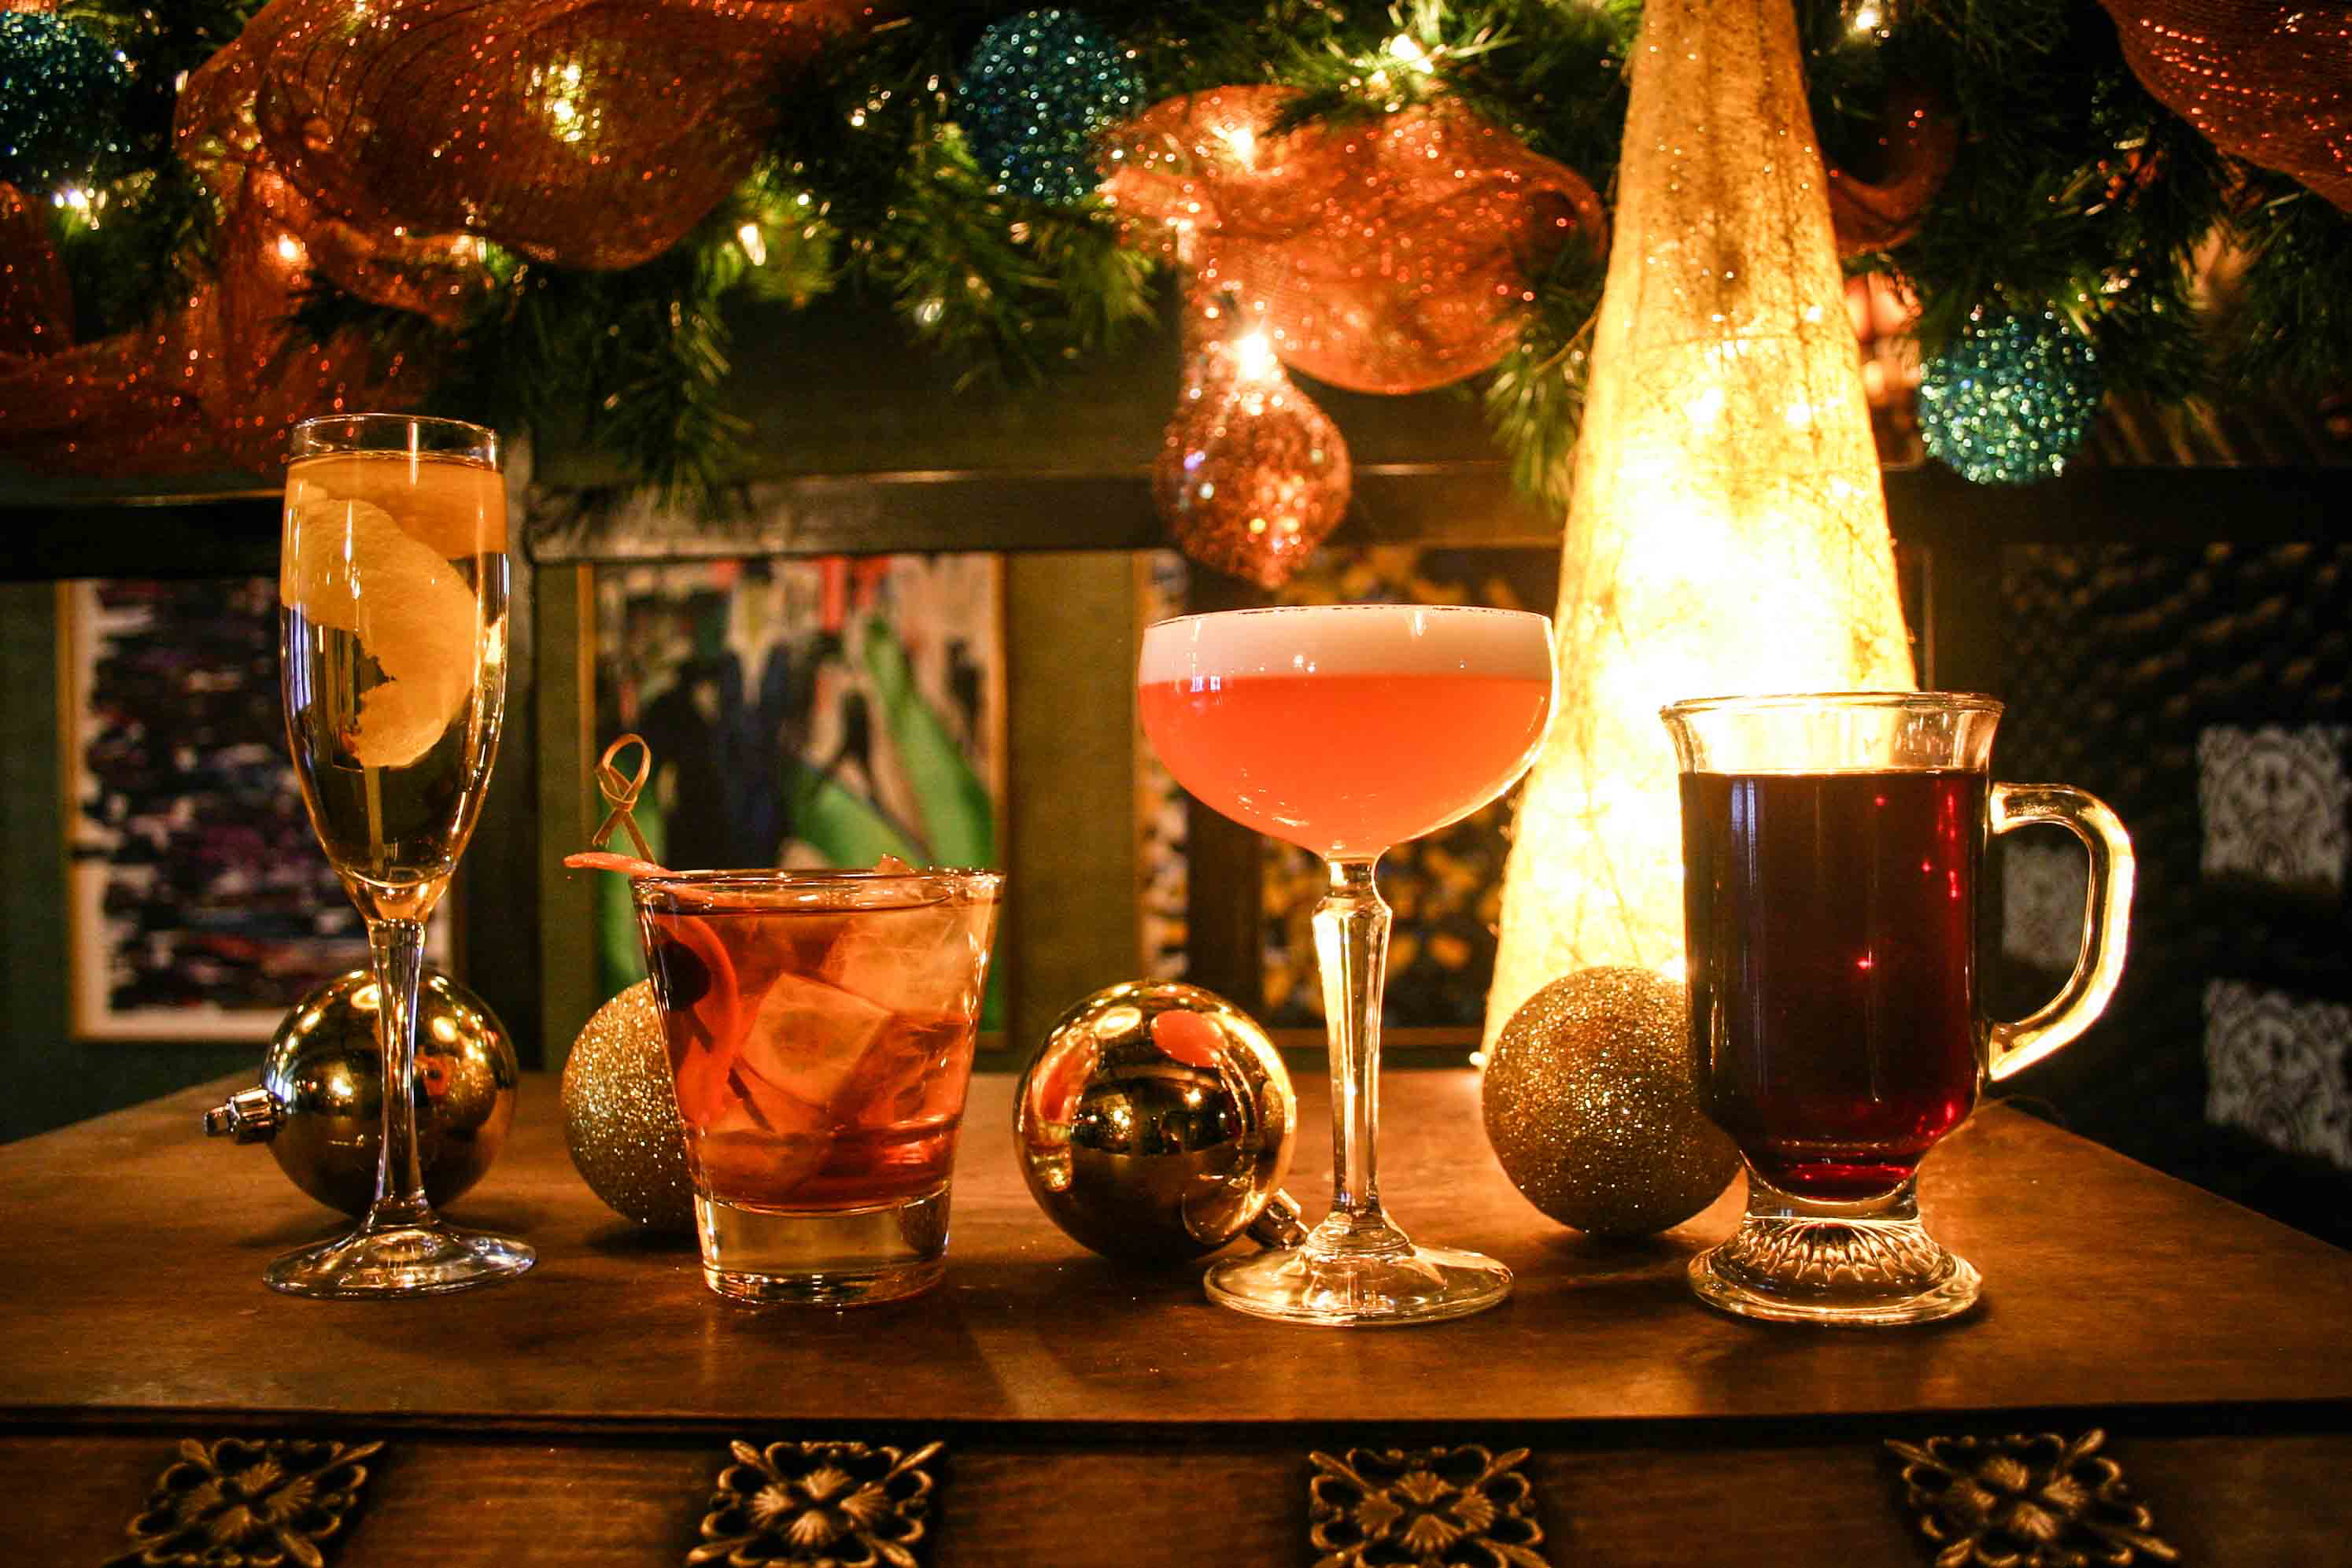 Eat Drink And Be Merry With Holiday Inspired Cocktails And Dishes